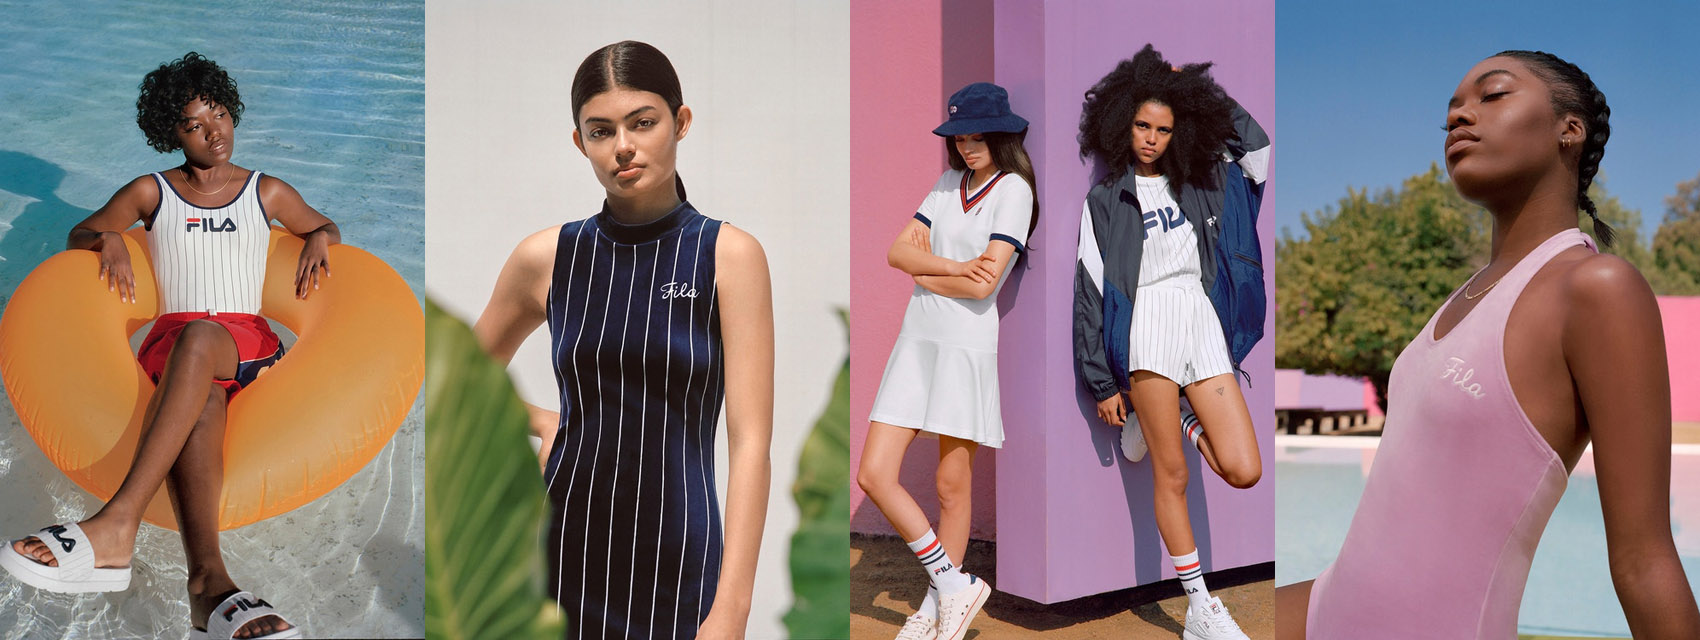 Fila spring summer heritage lookbook